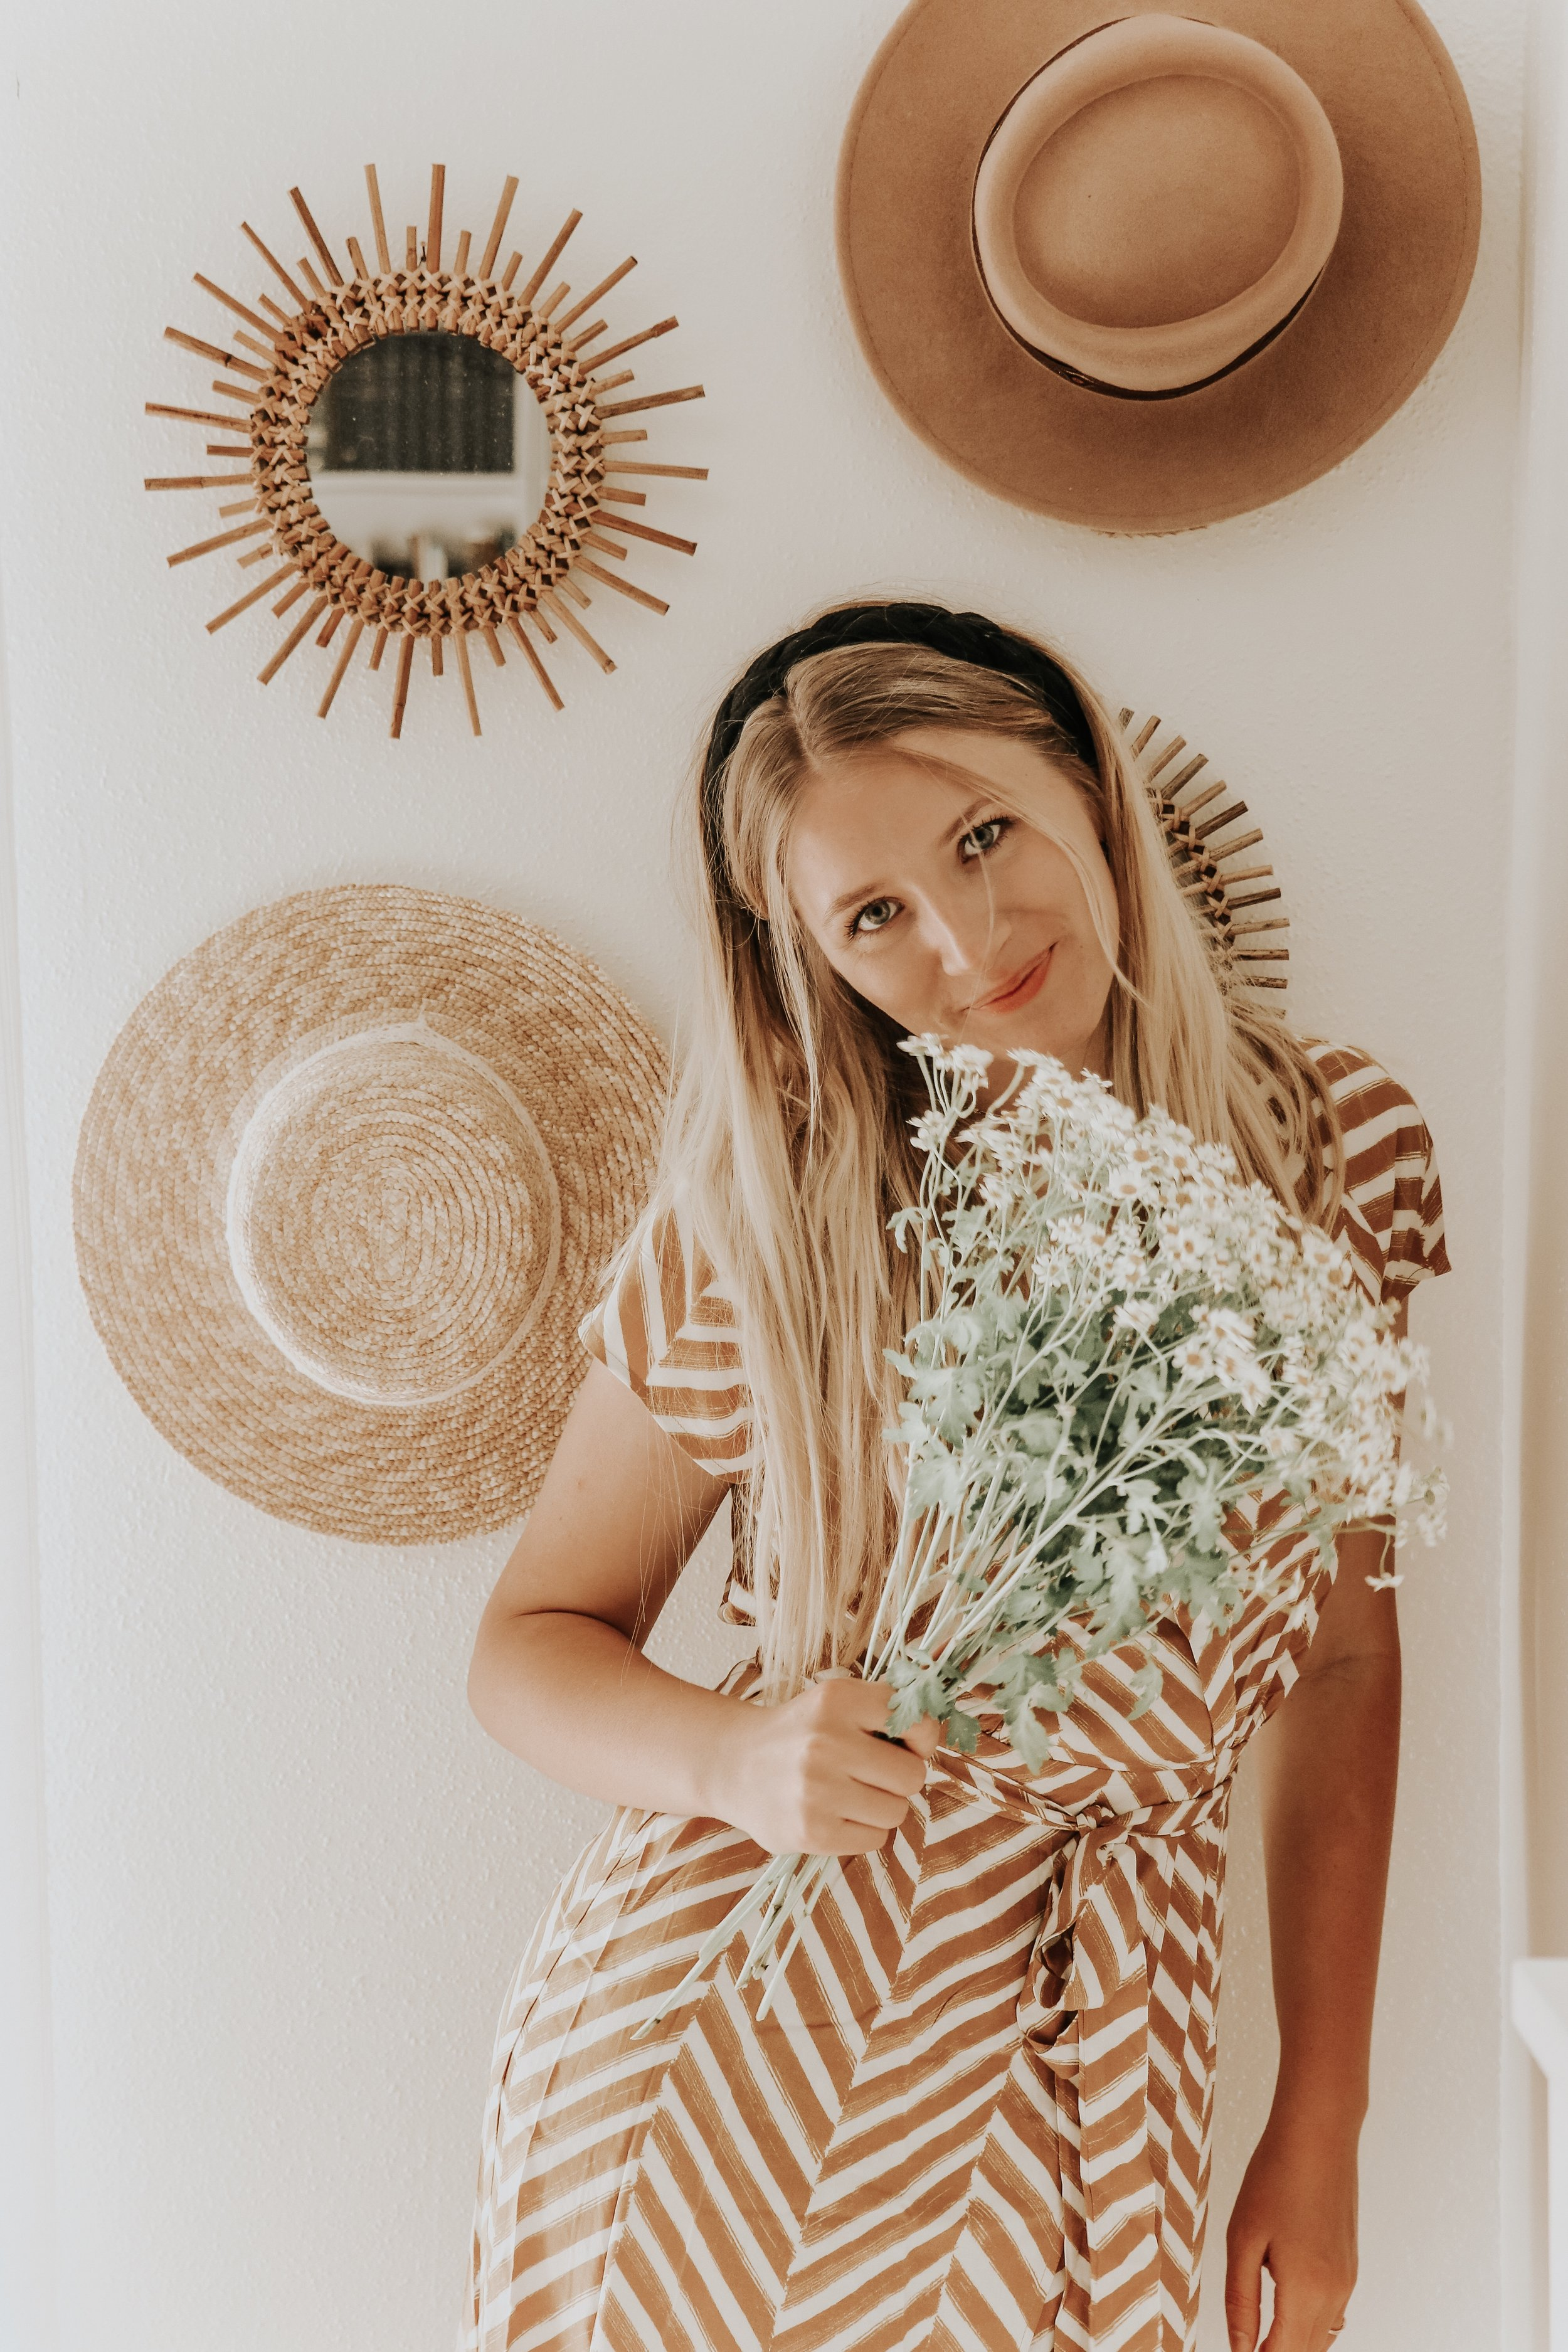 Hi y'all! I'm Anna Liisa, an artist, wife, and Jesus lover seeking to share the joy and grace found in Christ. I love worshipping by creating pieces of art. I believe He created us all to create, whether through art or another creative outlet. I hope to encourage, inspire, and bring light into the world by sharing Jesus. Ultimately, I want the Lord to bless me to be a blessing in the lives of others. Let's be friends!  Web:  annaliisamoss.com